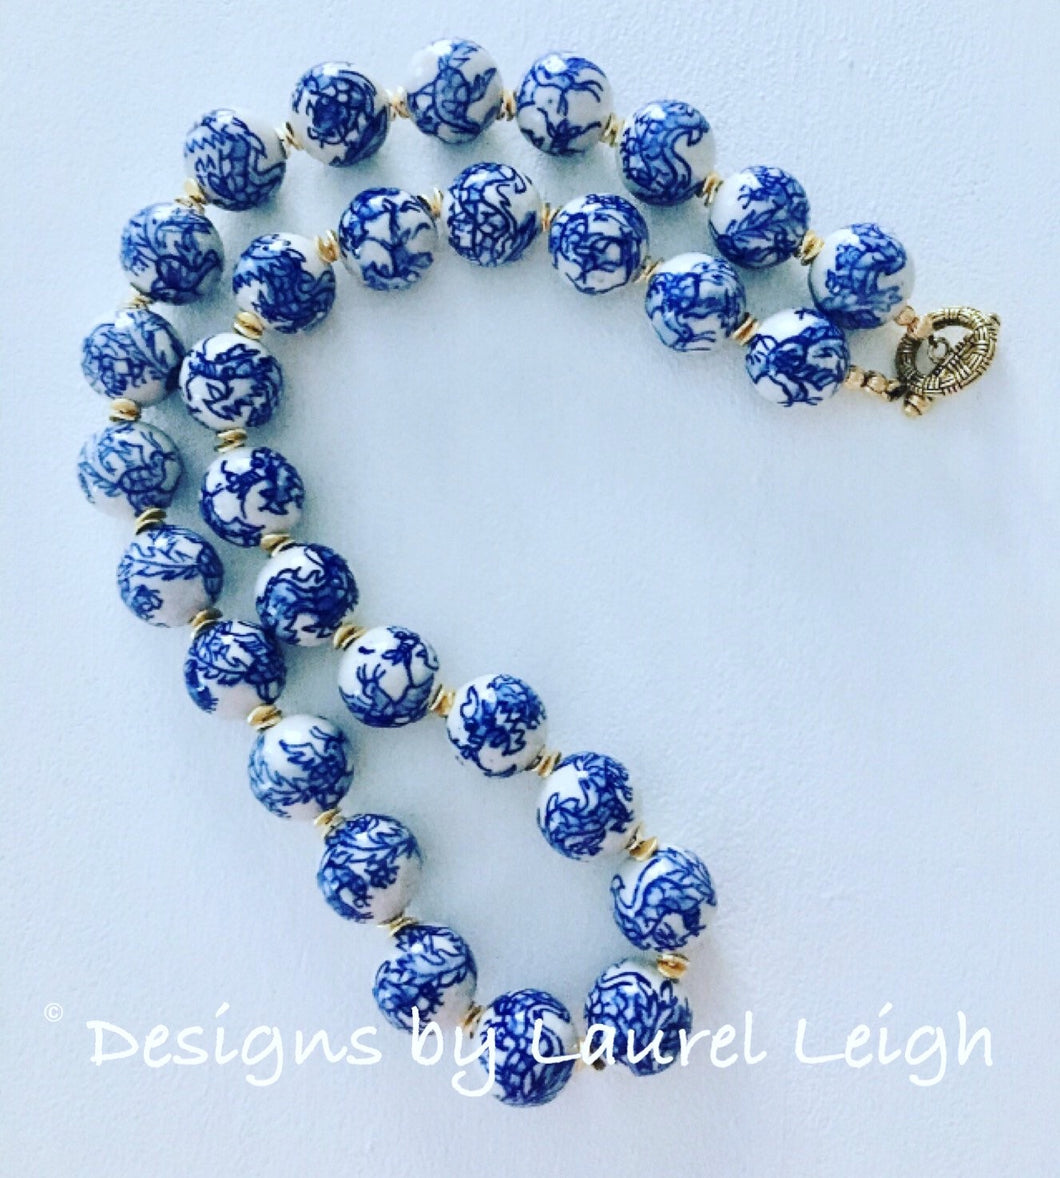 Blue and White Chunky Chinoiserie Dragon Statement Necklace - Ginger jar